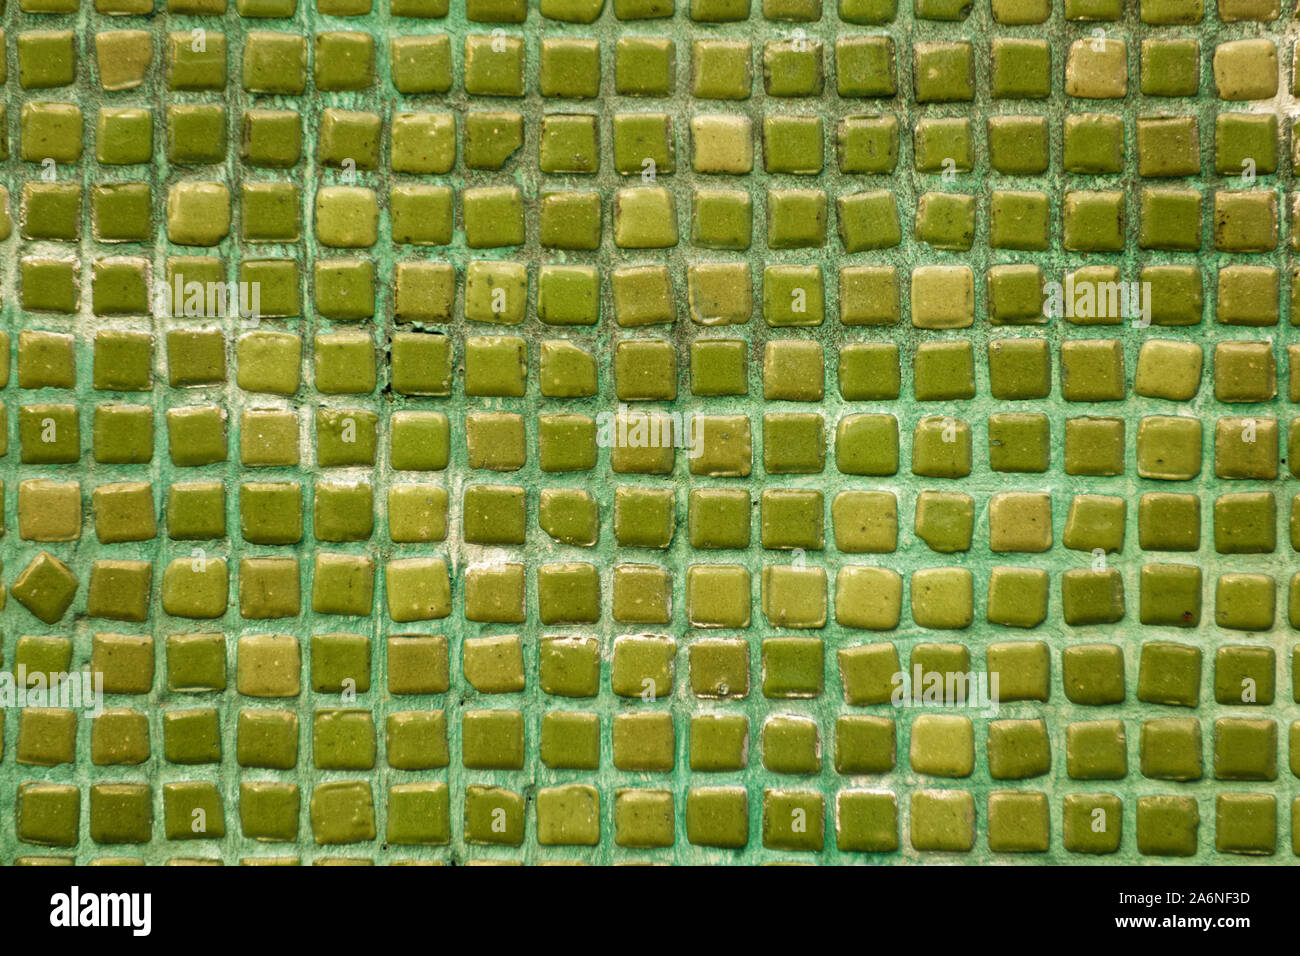 Background texture of old handmade green / turquoise mixture multi-colored ceramic mosaic tiles with space between them. Stock Photo